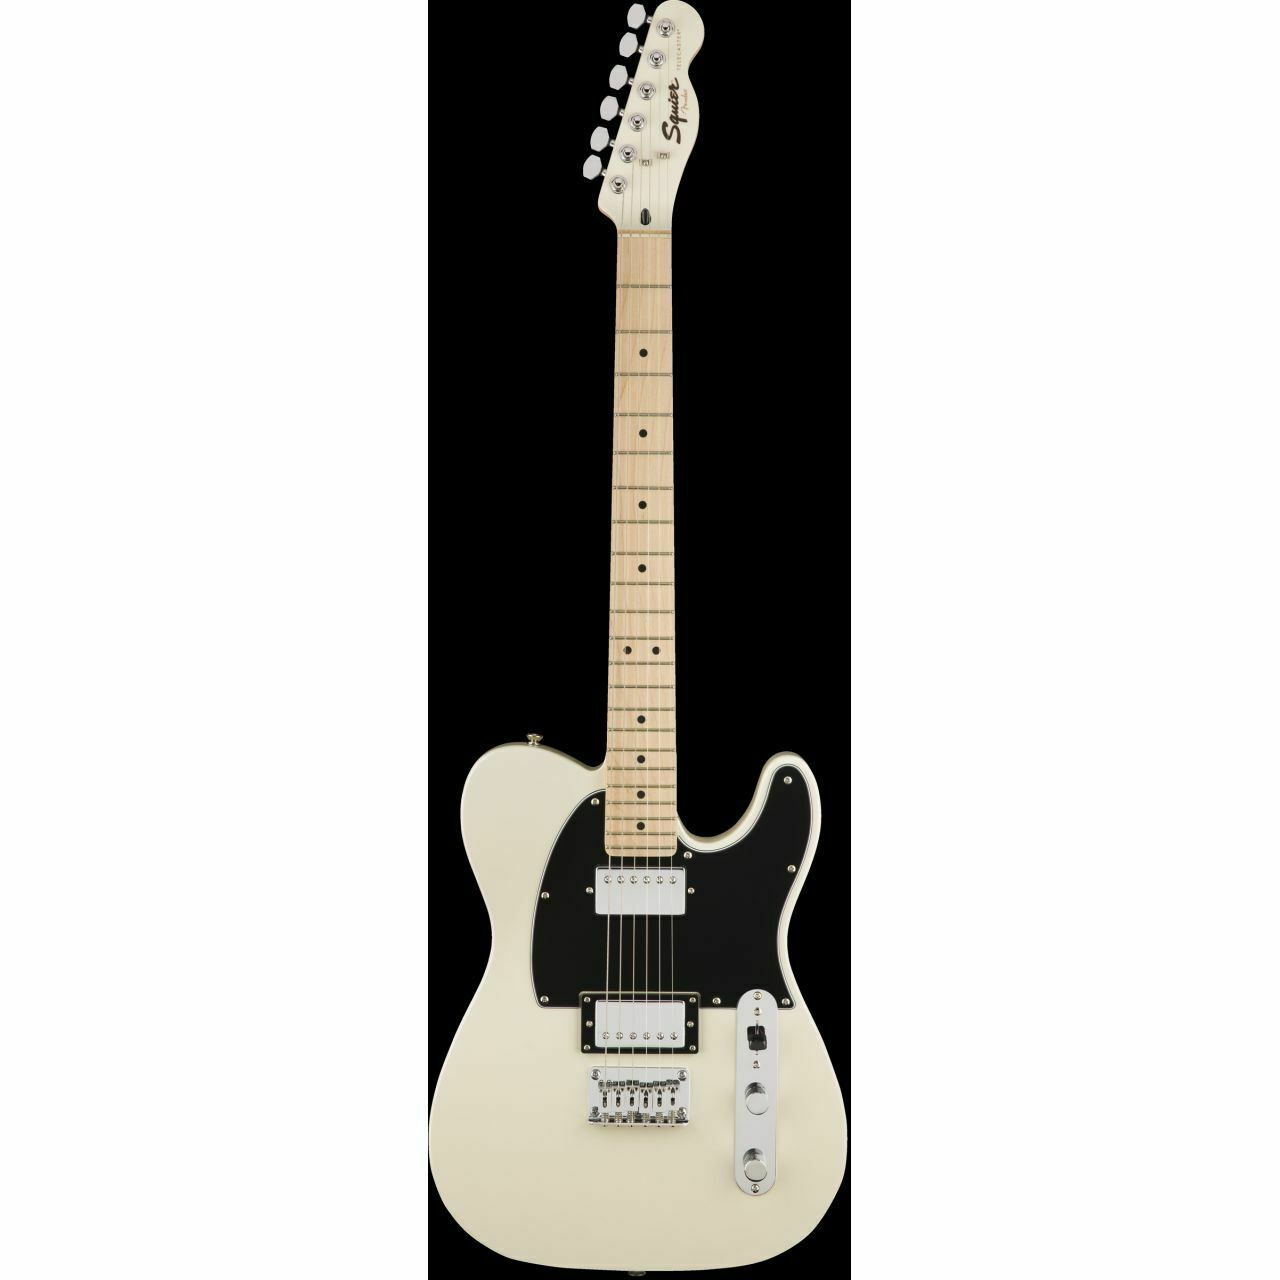 This Squier Telecaster electric guitar is for sale - SQUIER Contemporary TELECASTER Hh Pearl White